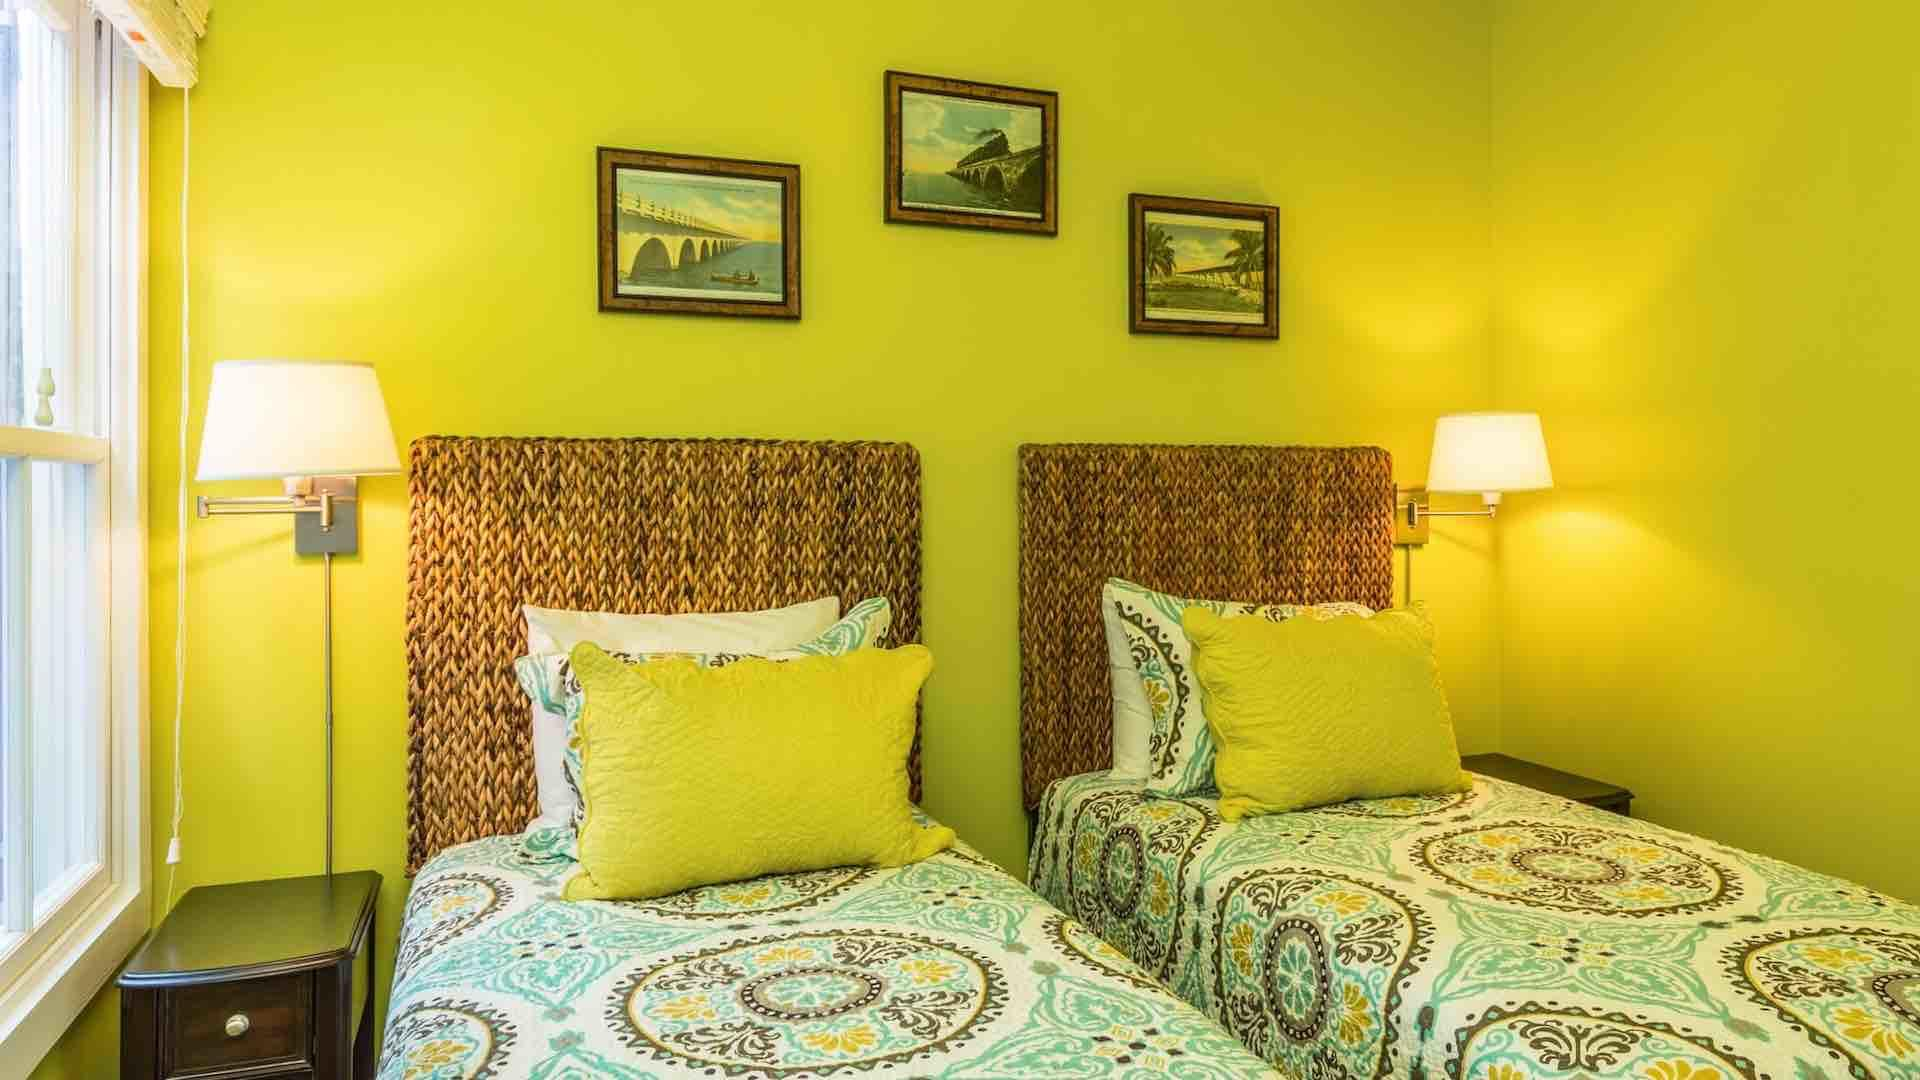 Each bed has its' own reading lamp and nightstand...